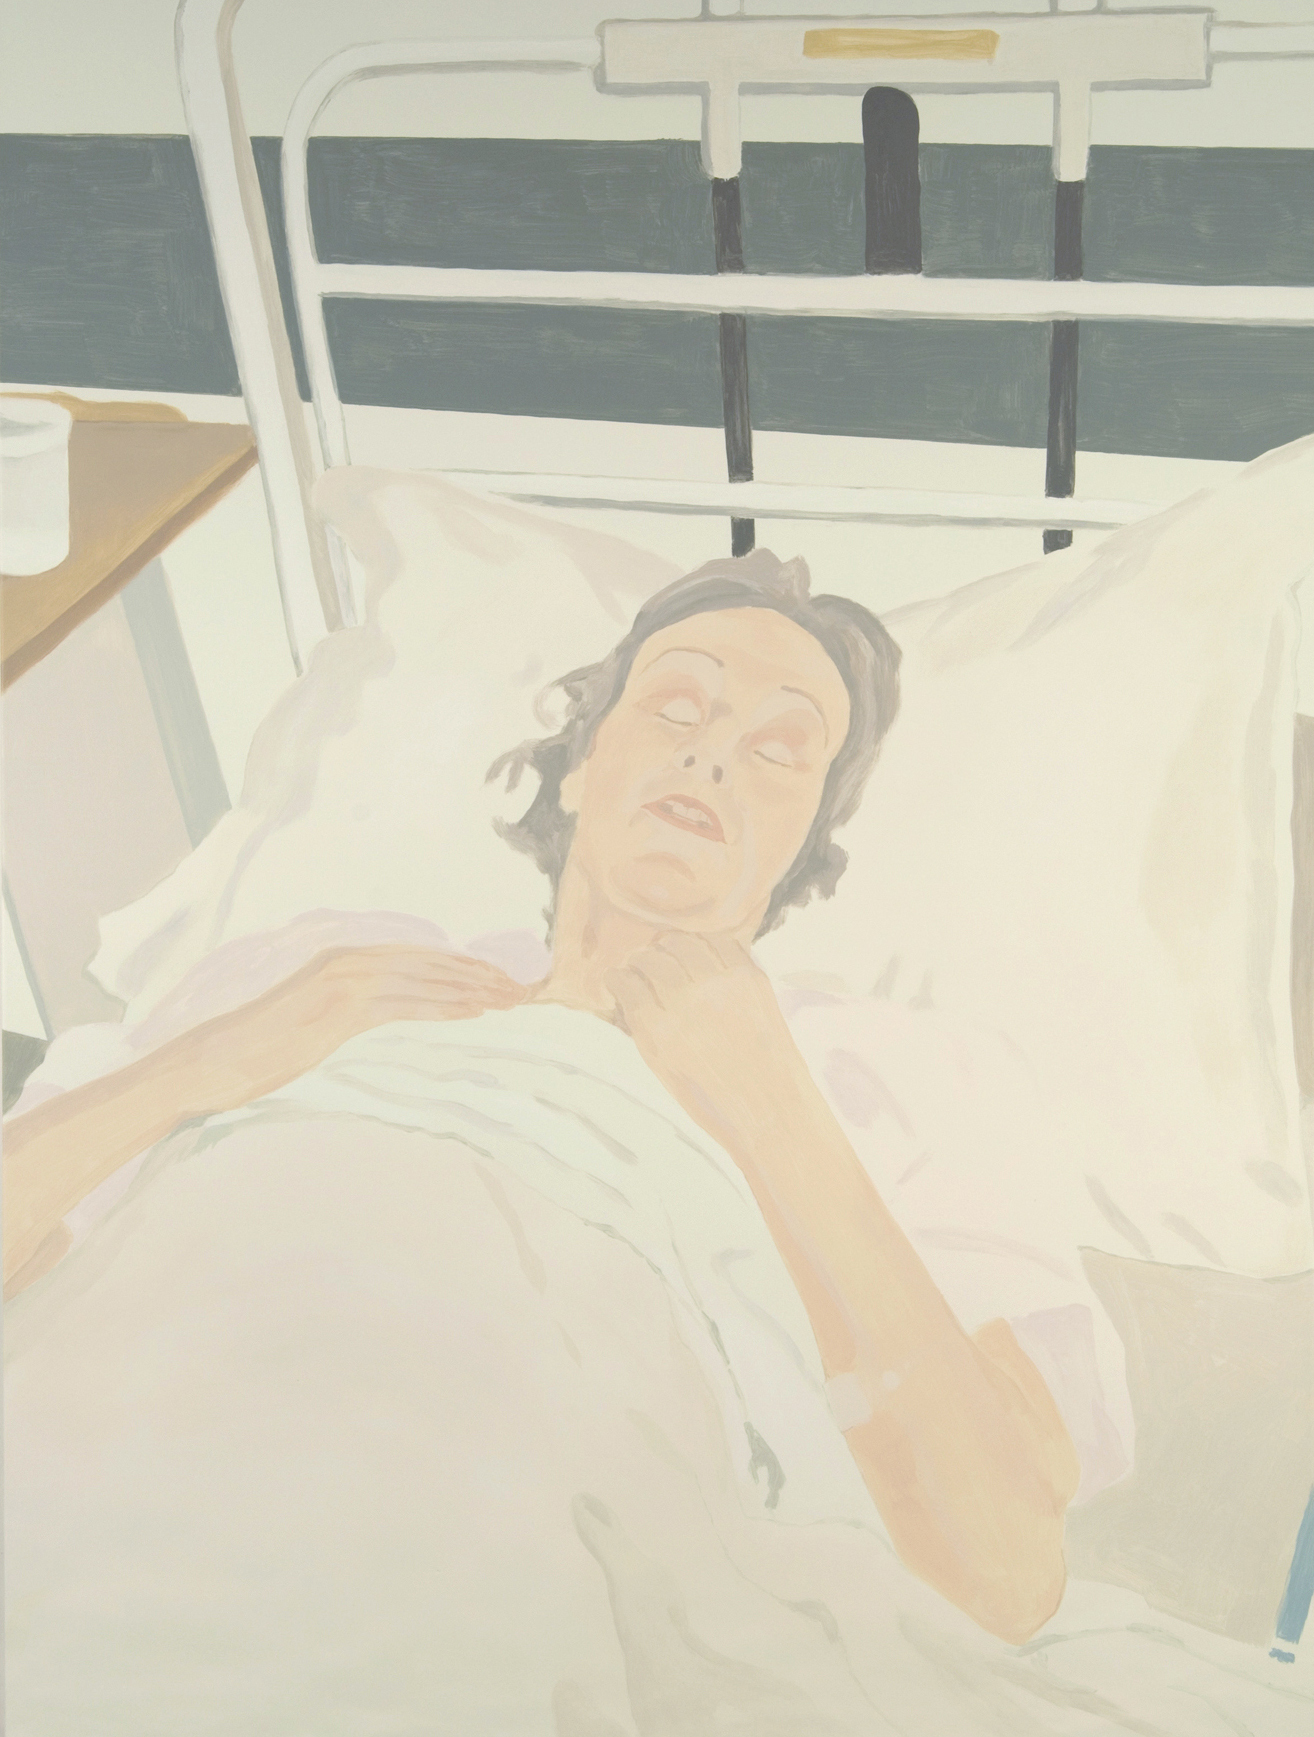 Woman in Hospital, acrylic on canvas, 96 x 72 inches, 2007.